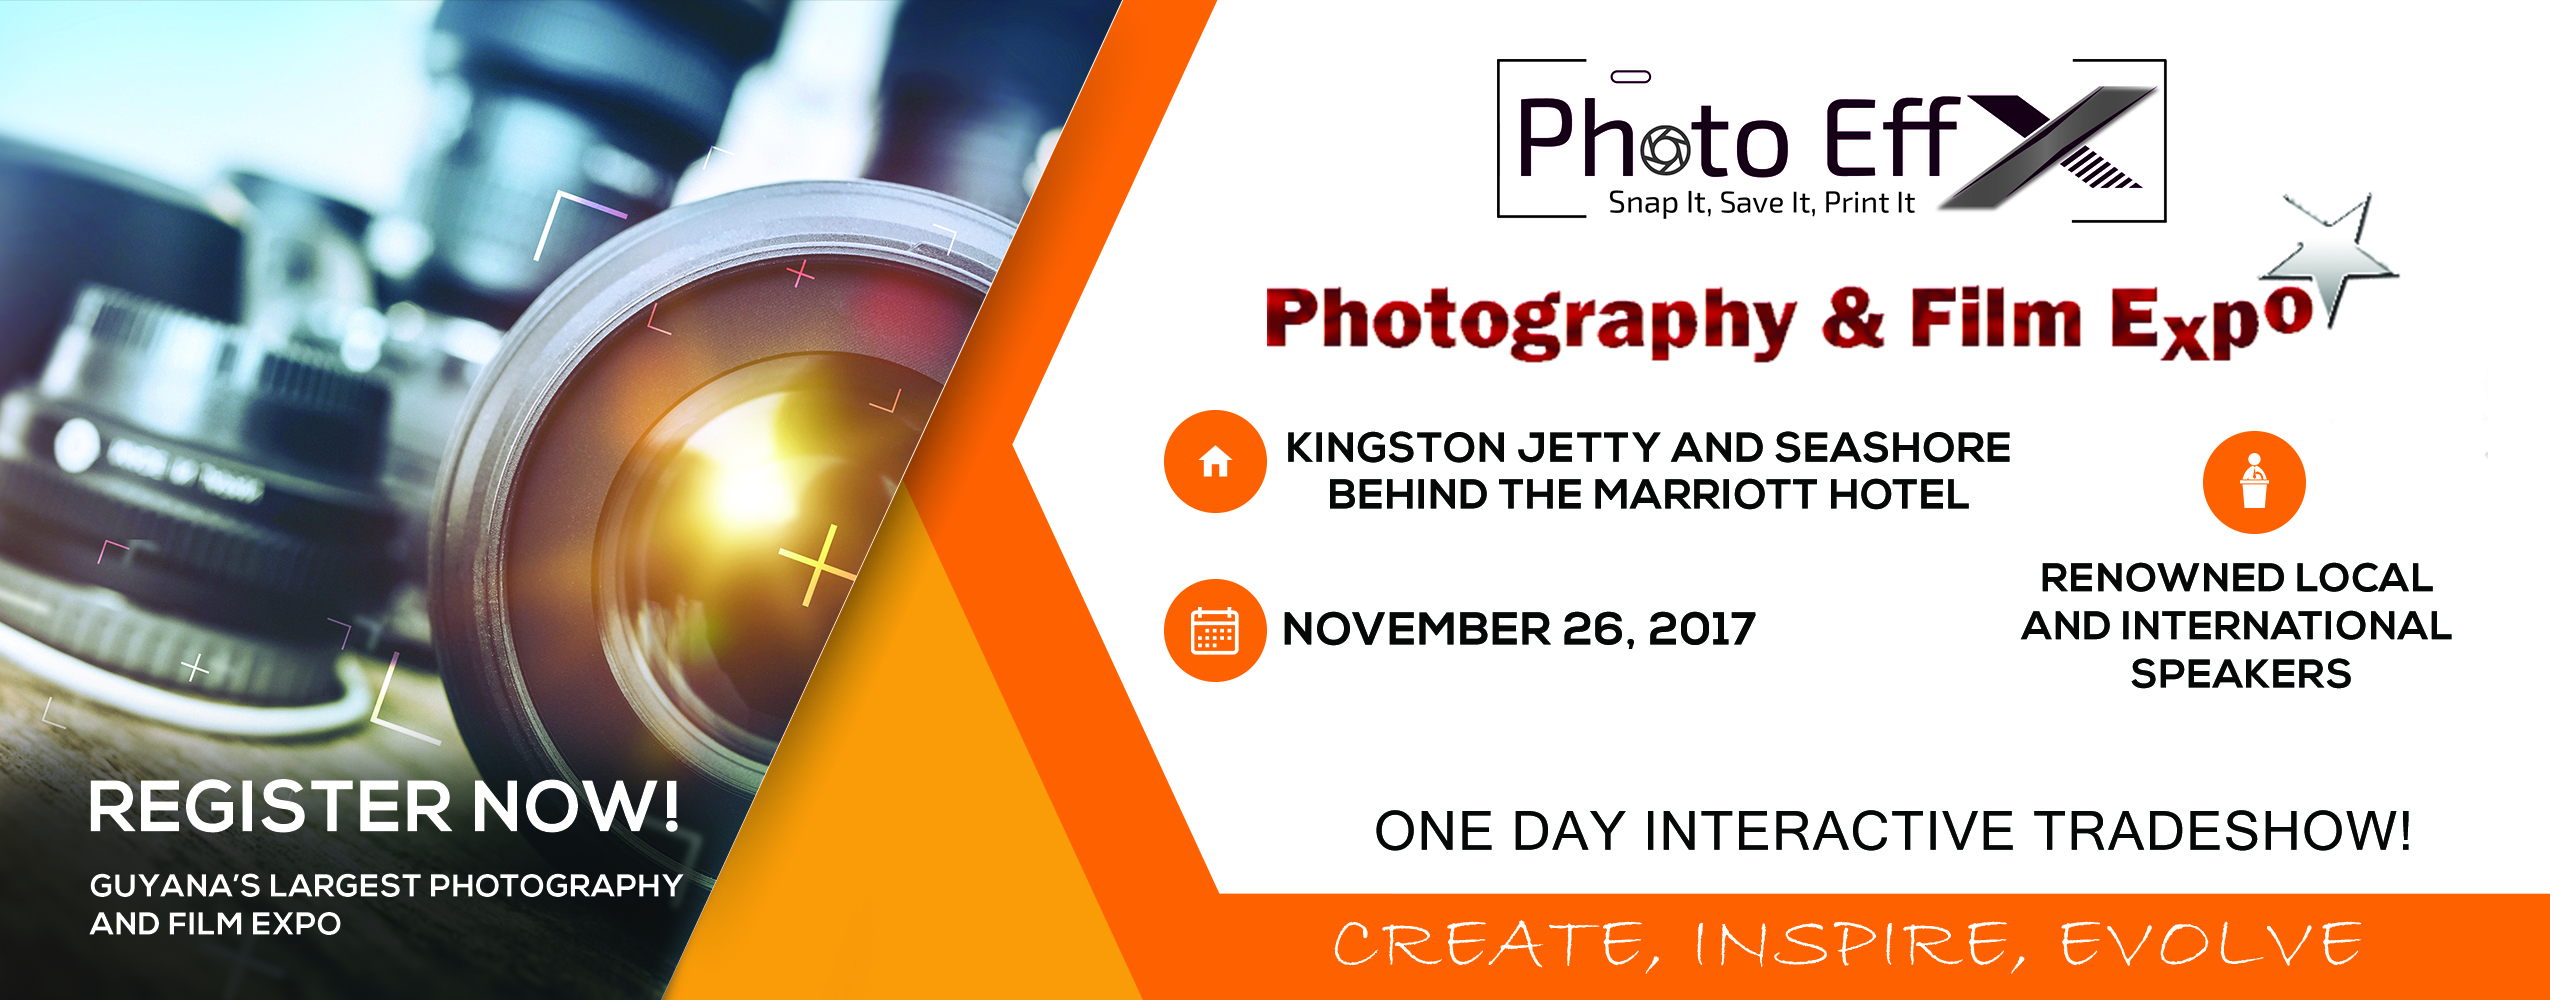 Photography Expo